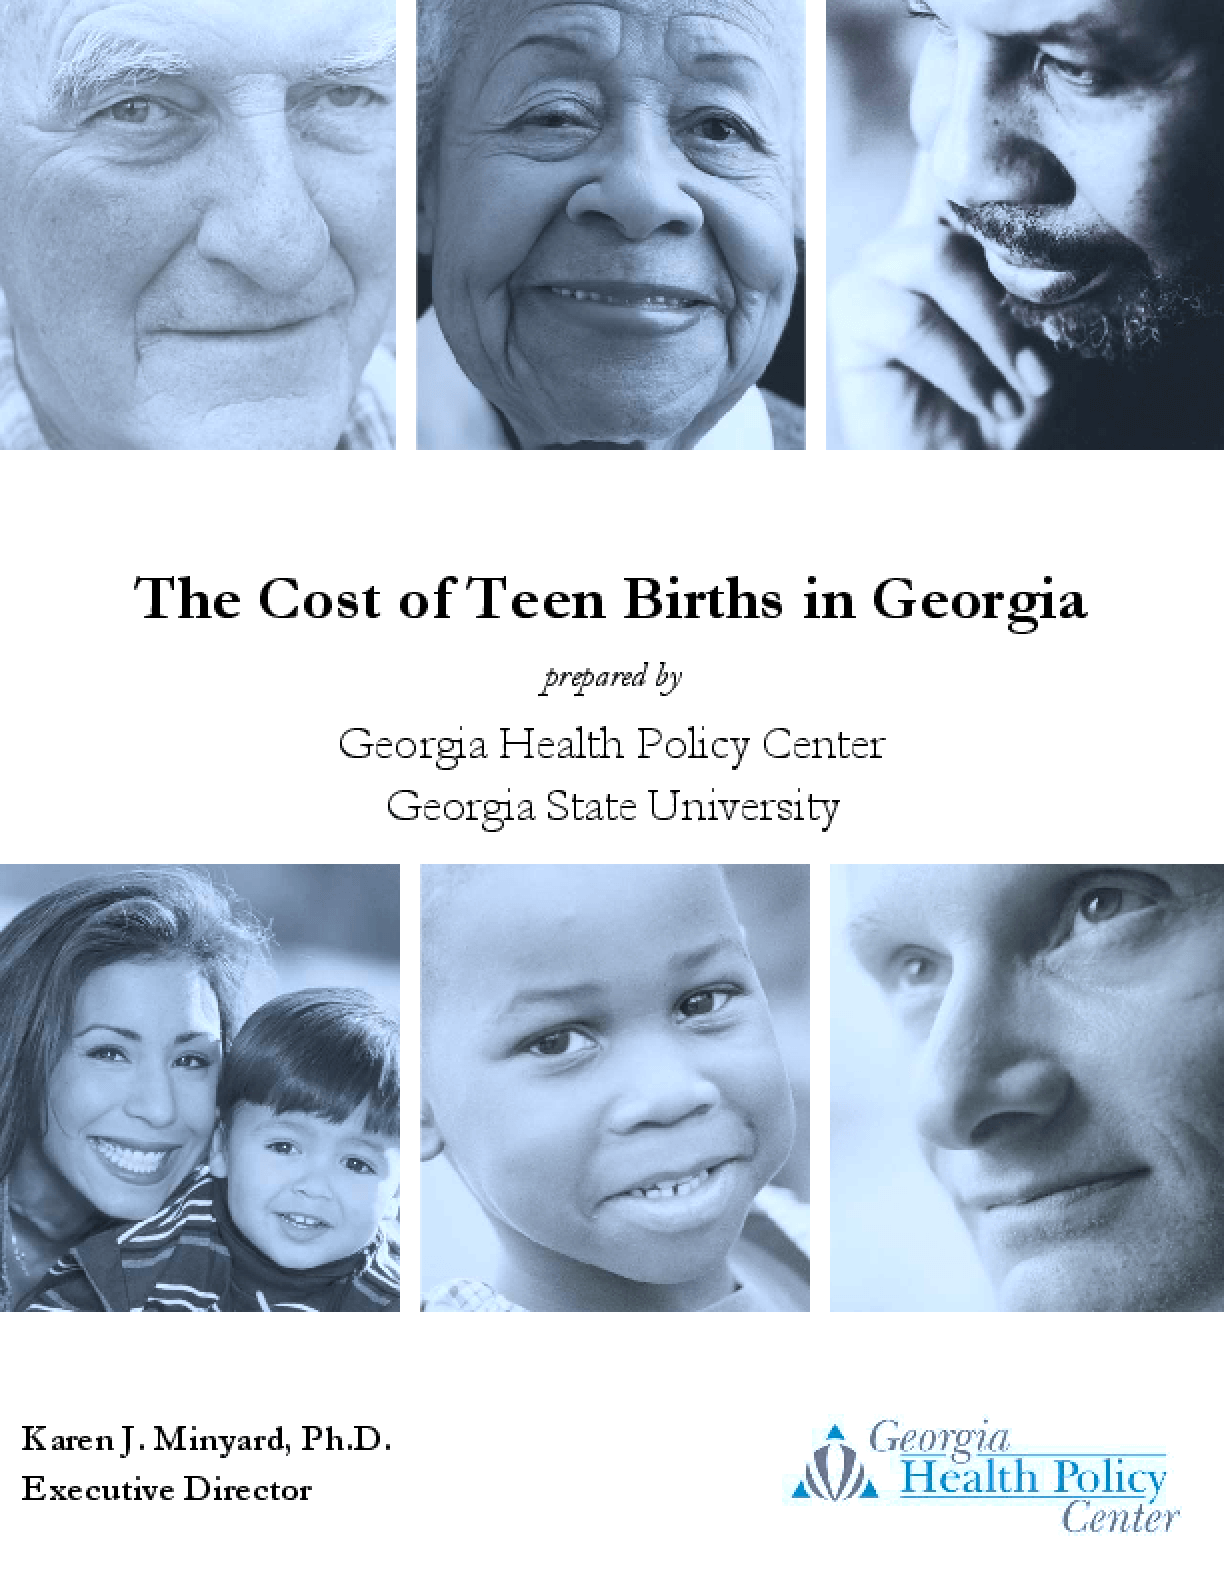 The Cost of Teen Births in Georgia: Report for the Georgia Health Policy Center